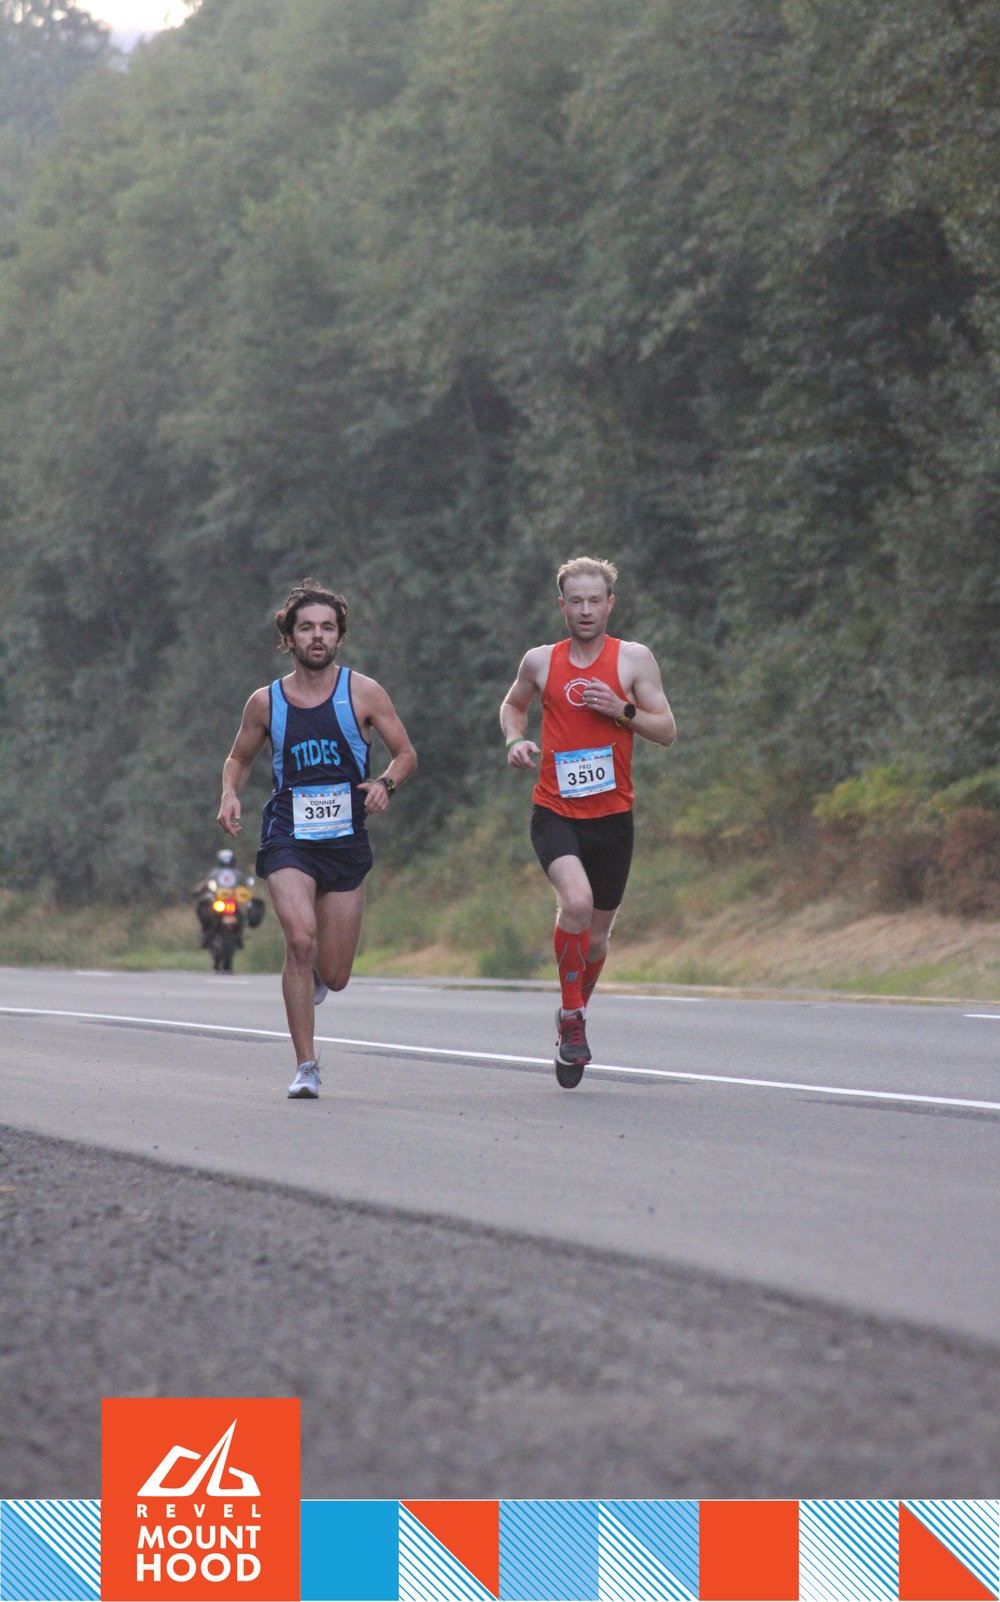 Phil Olson tackling the 2018 Revel Mt. Hood Half in preparation for Chicago